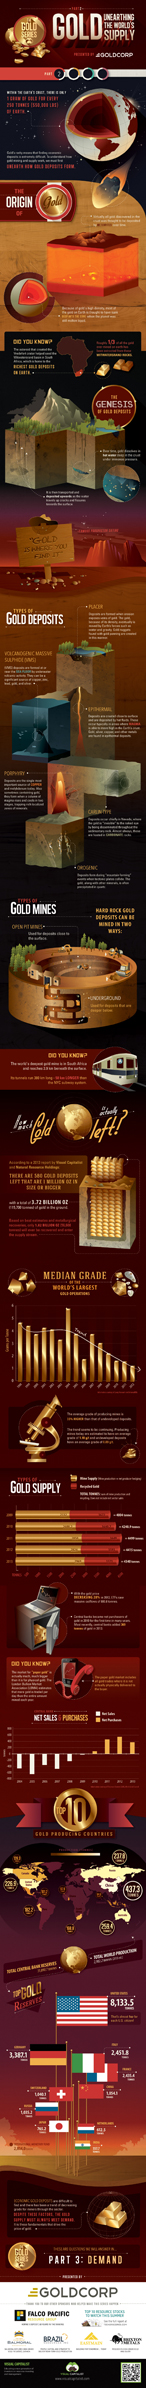 gold-series-unearthing-supply-infographic